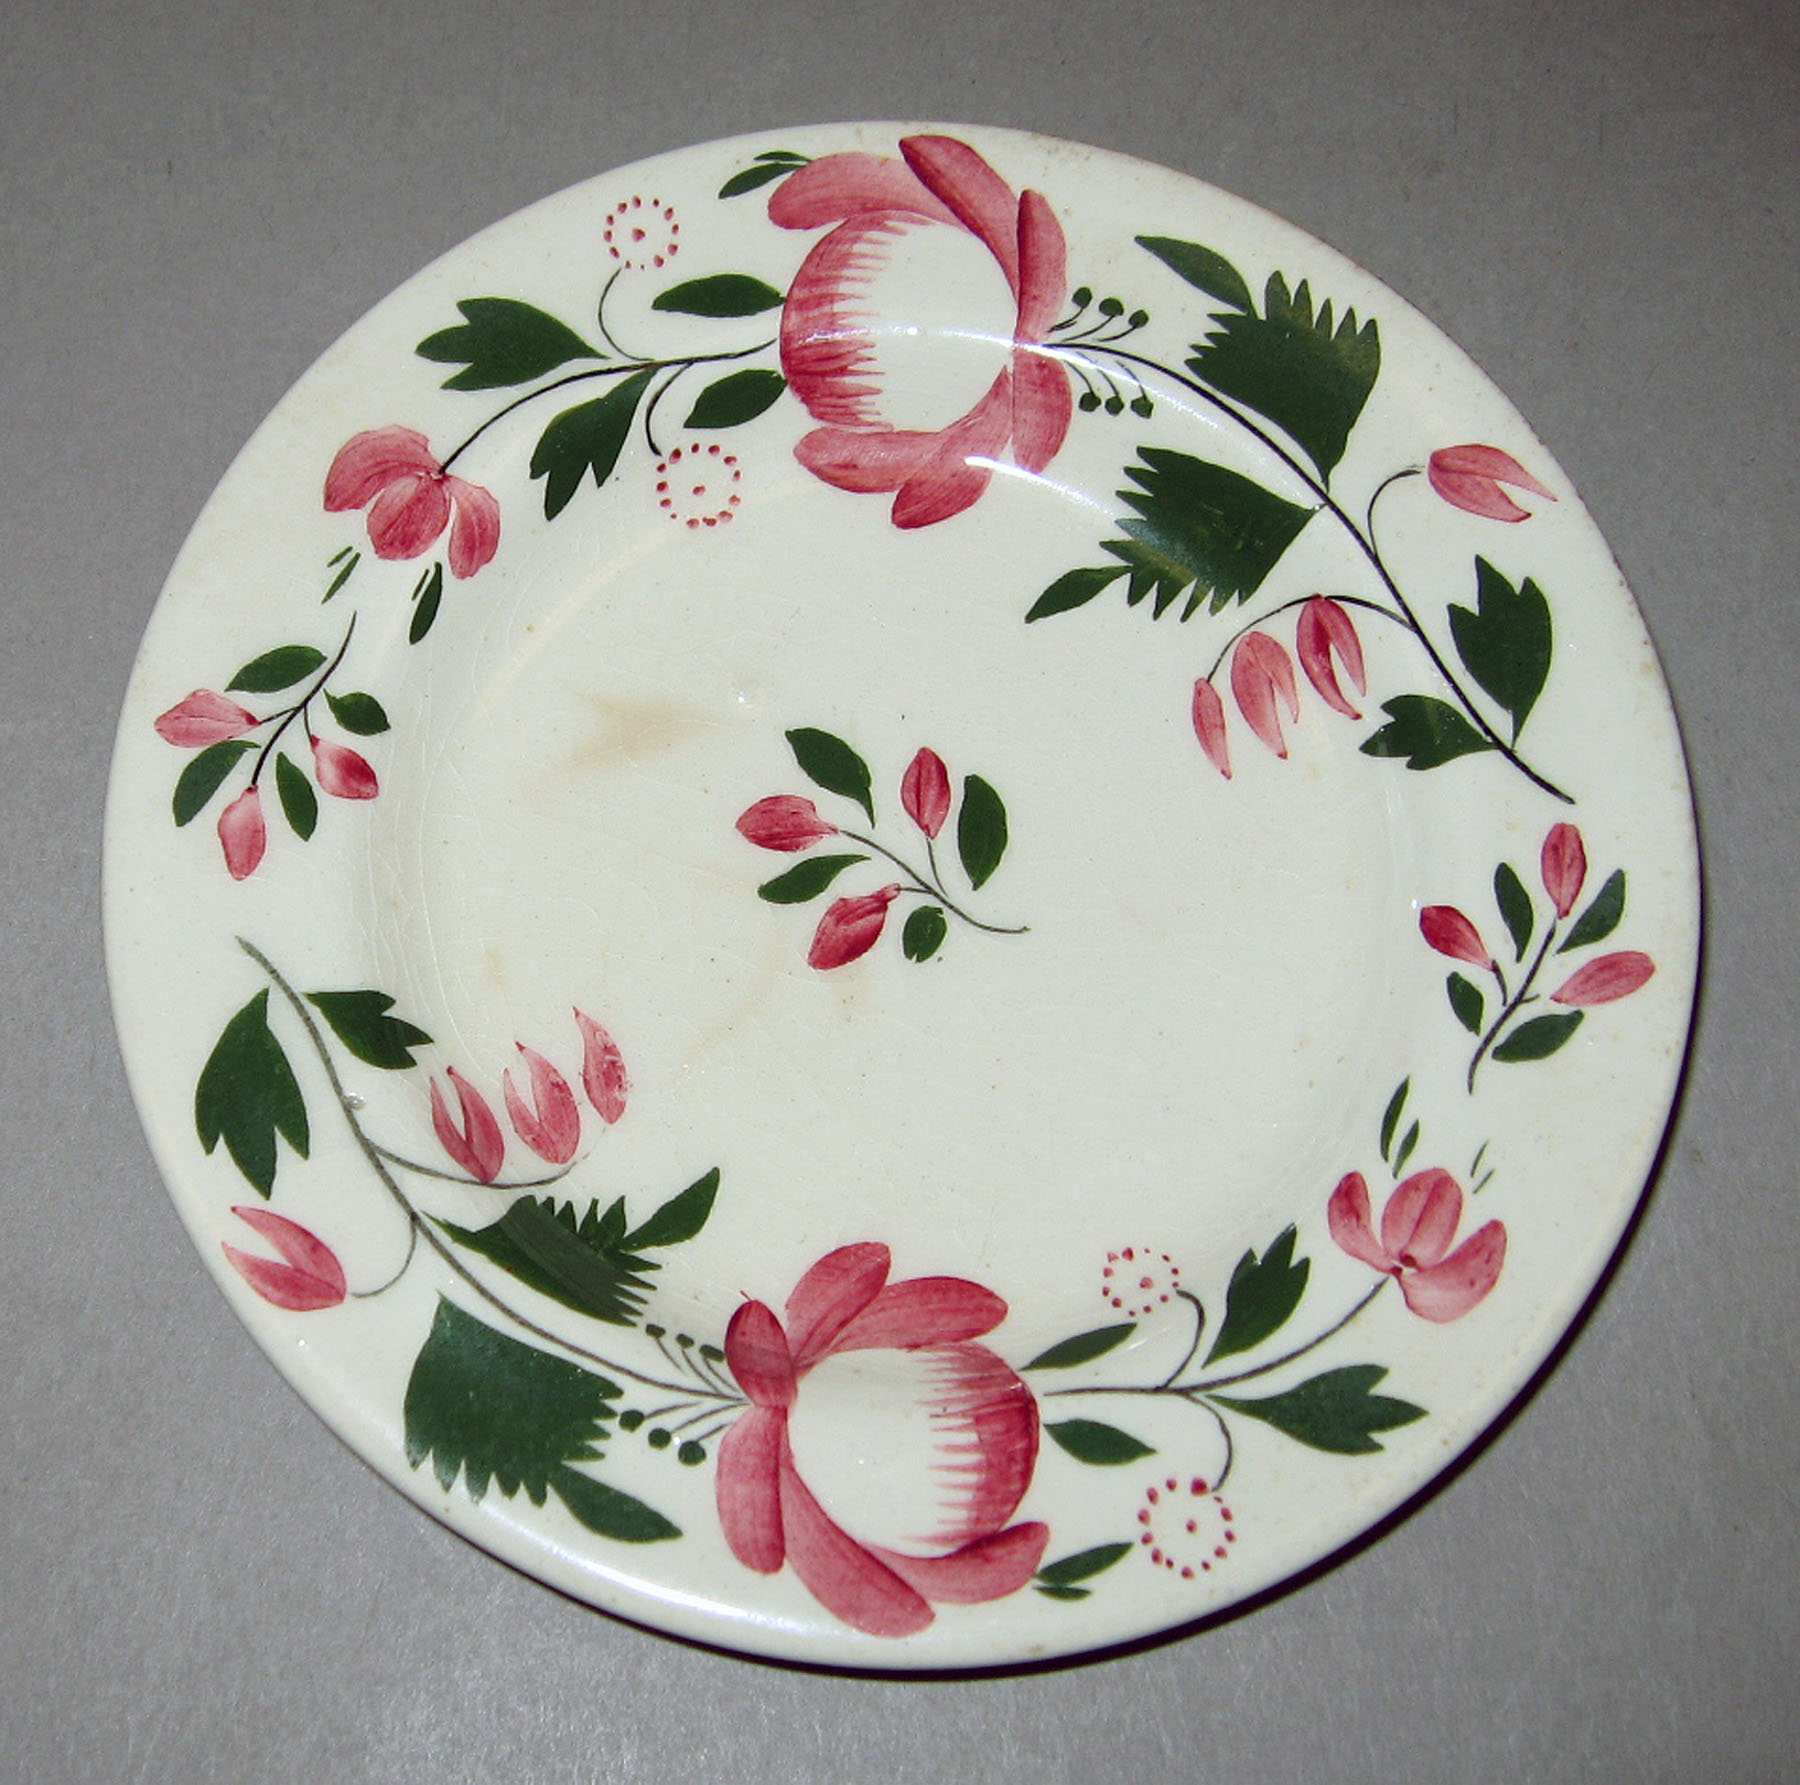 1954.0003.009 Pearlware plate